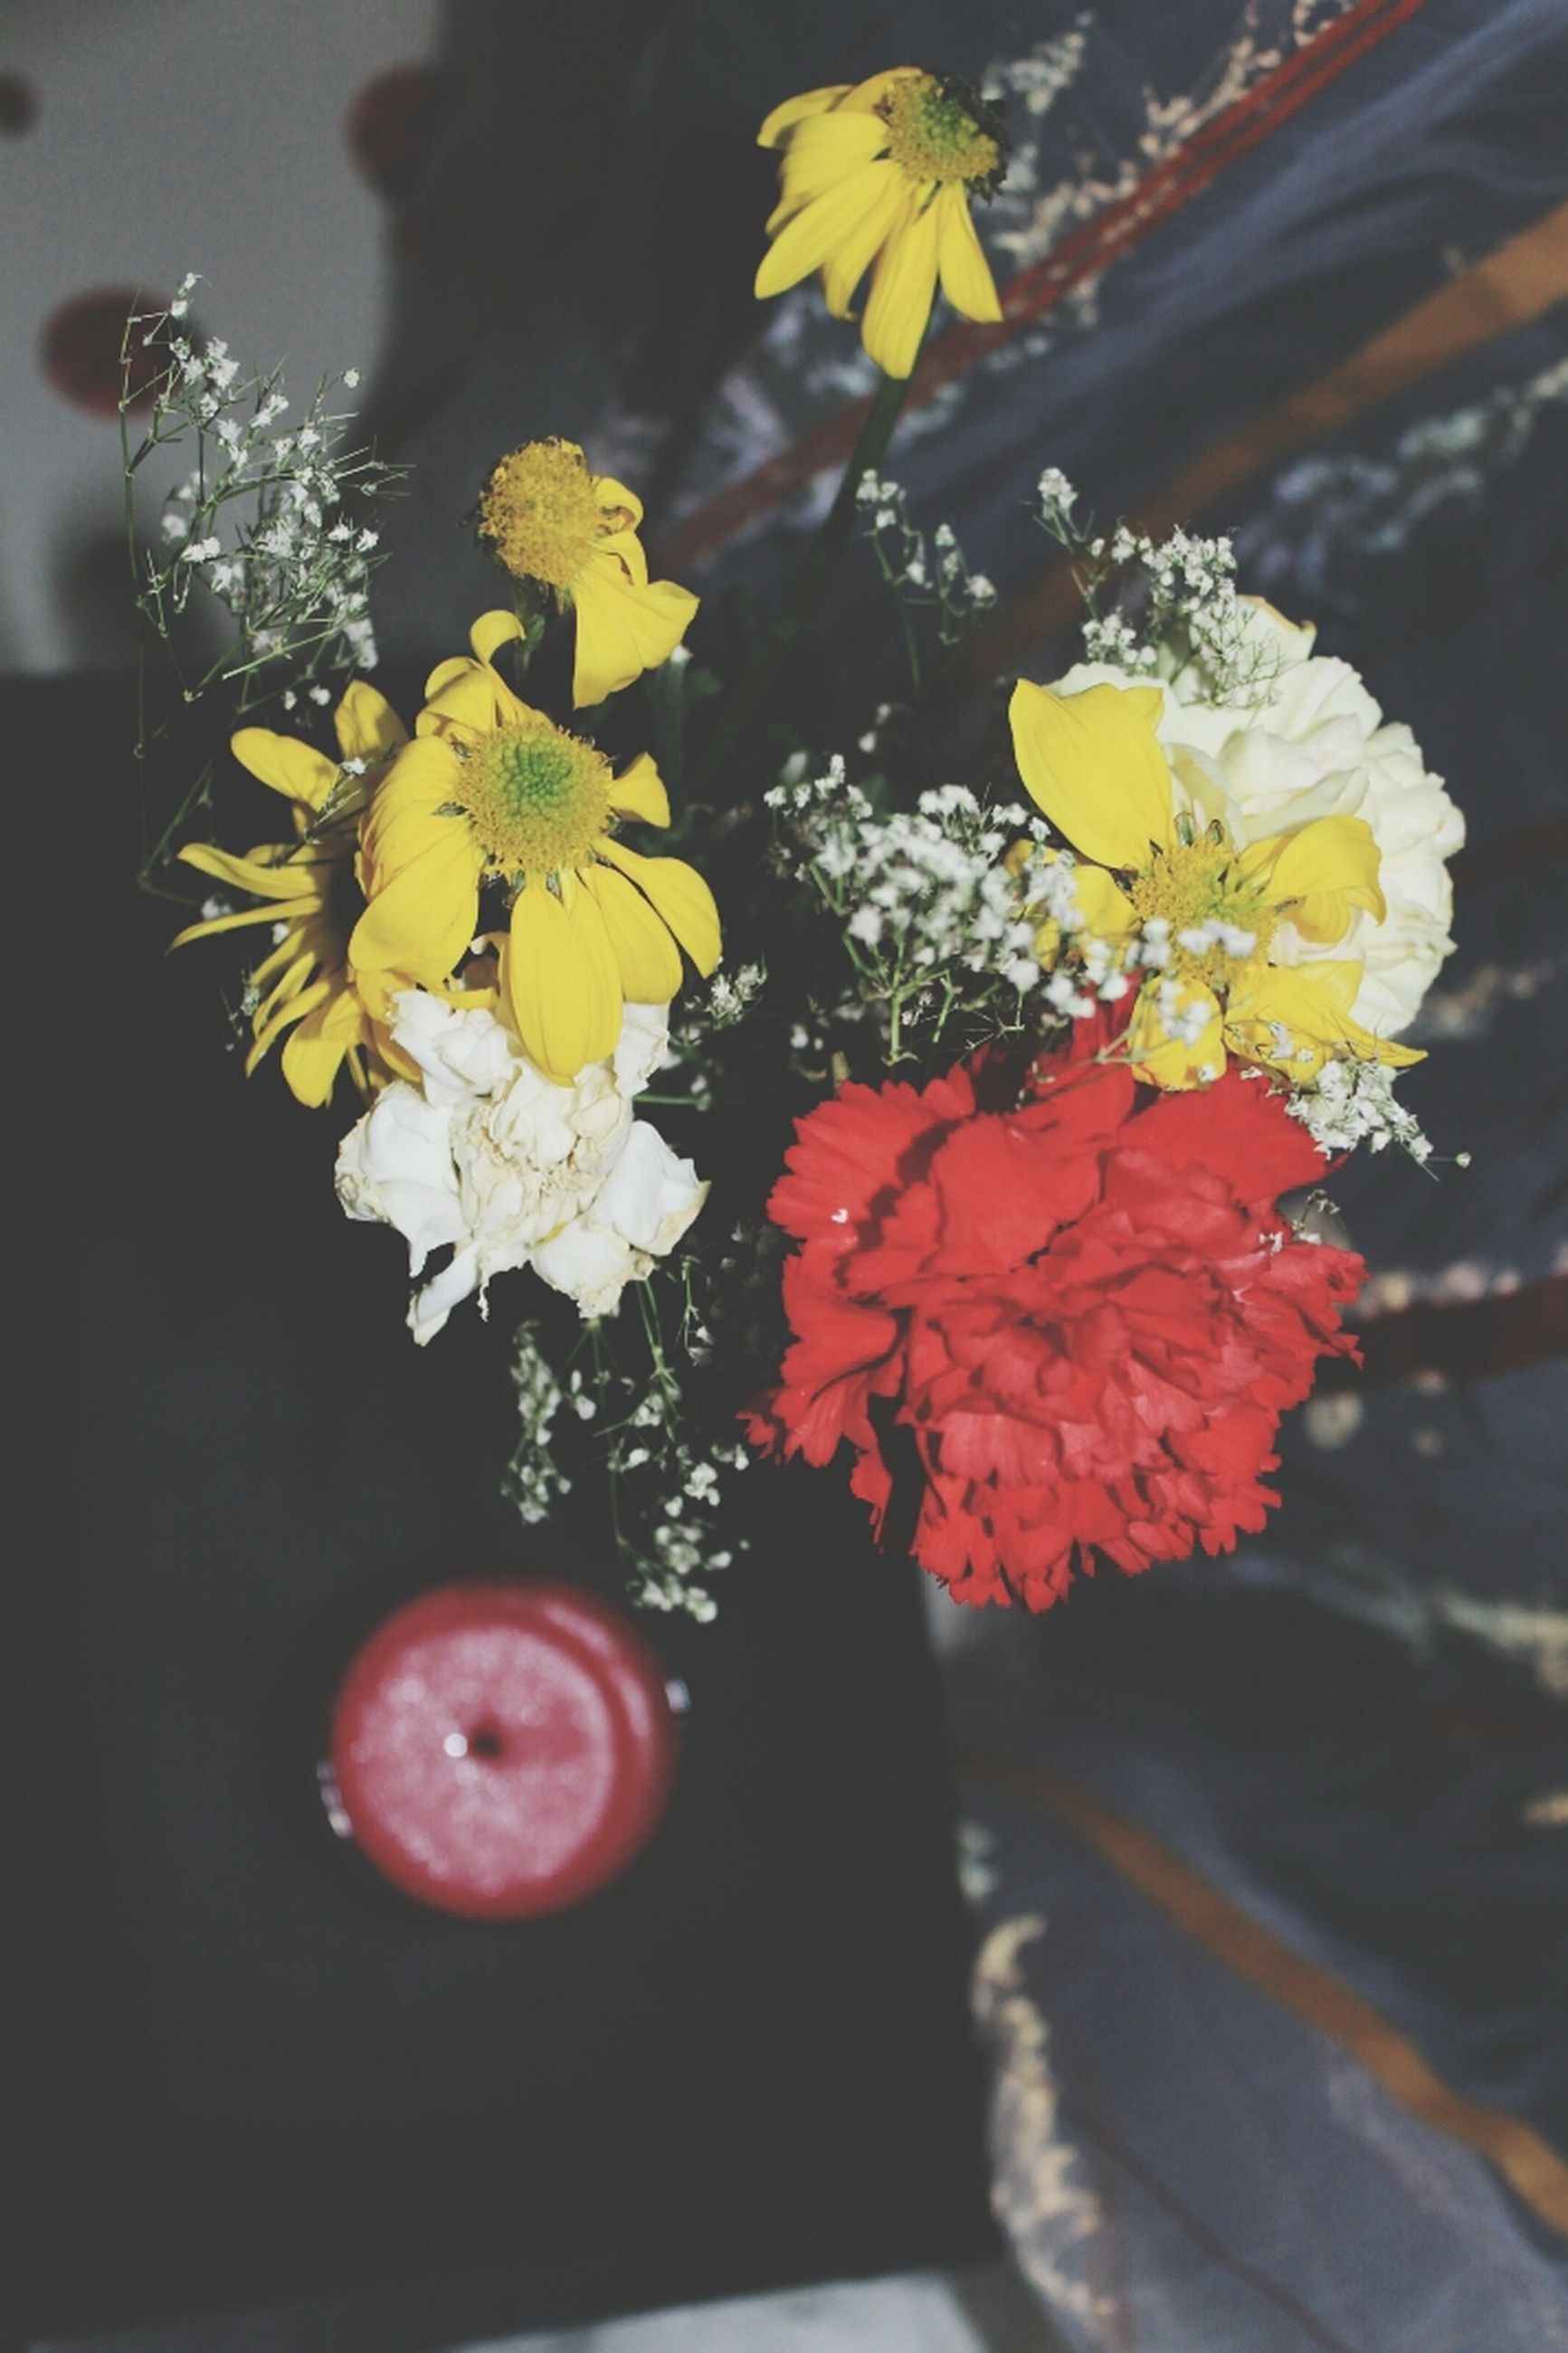 flower, petal, freshness, fragility, yellow, flower head, close-up, beauty in nature, growth, nature, focus on foreground, plant, blooming, high angle view, in bloom, indoors, blossom, no people, selective focus, red